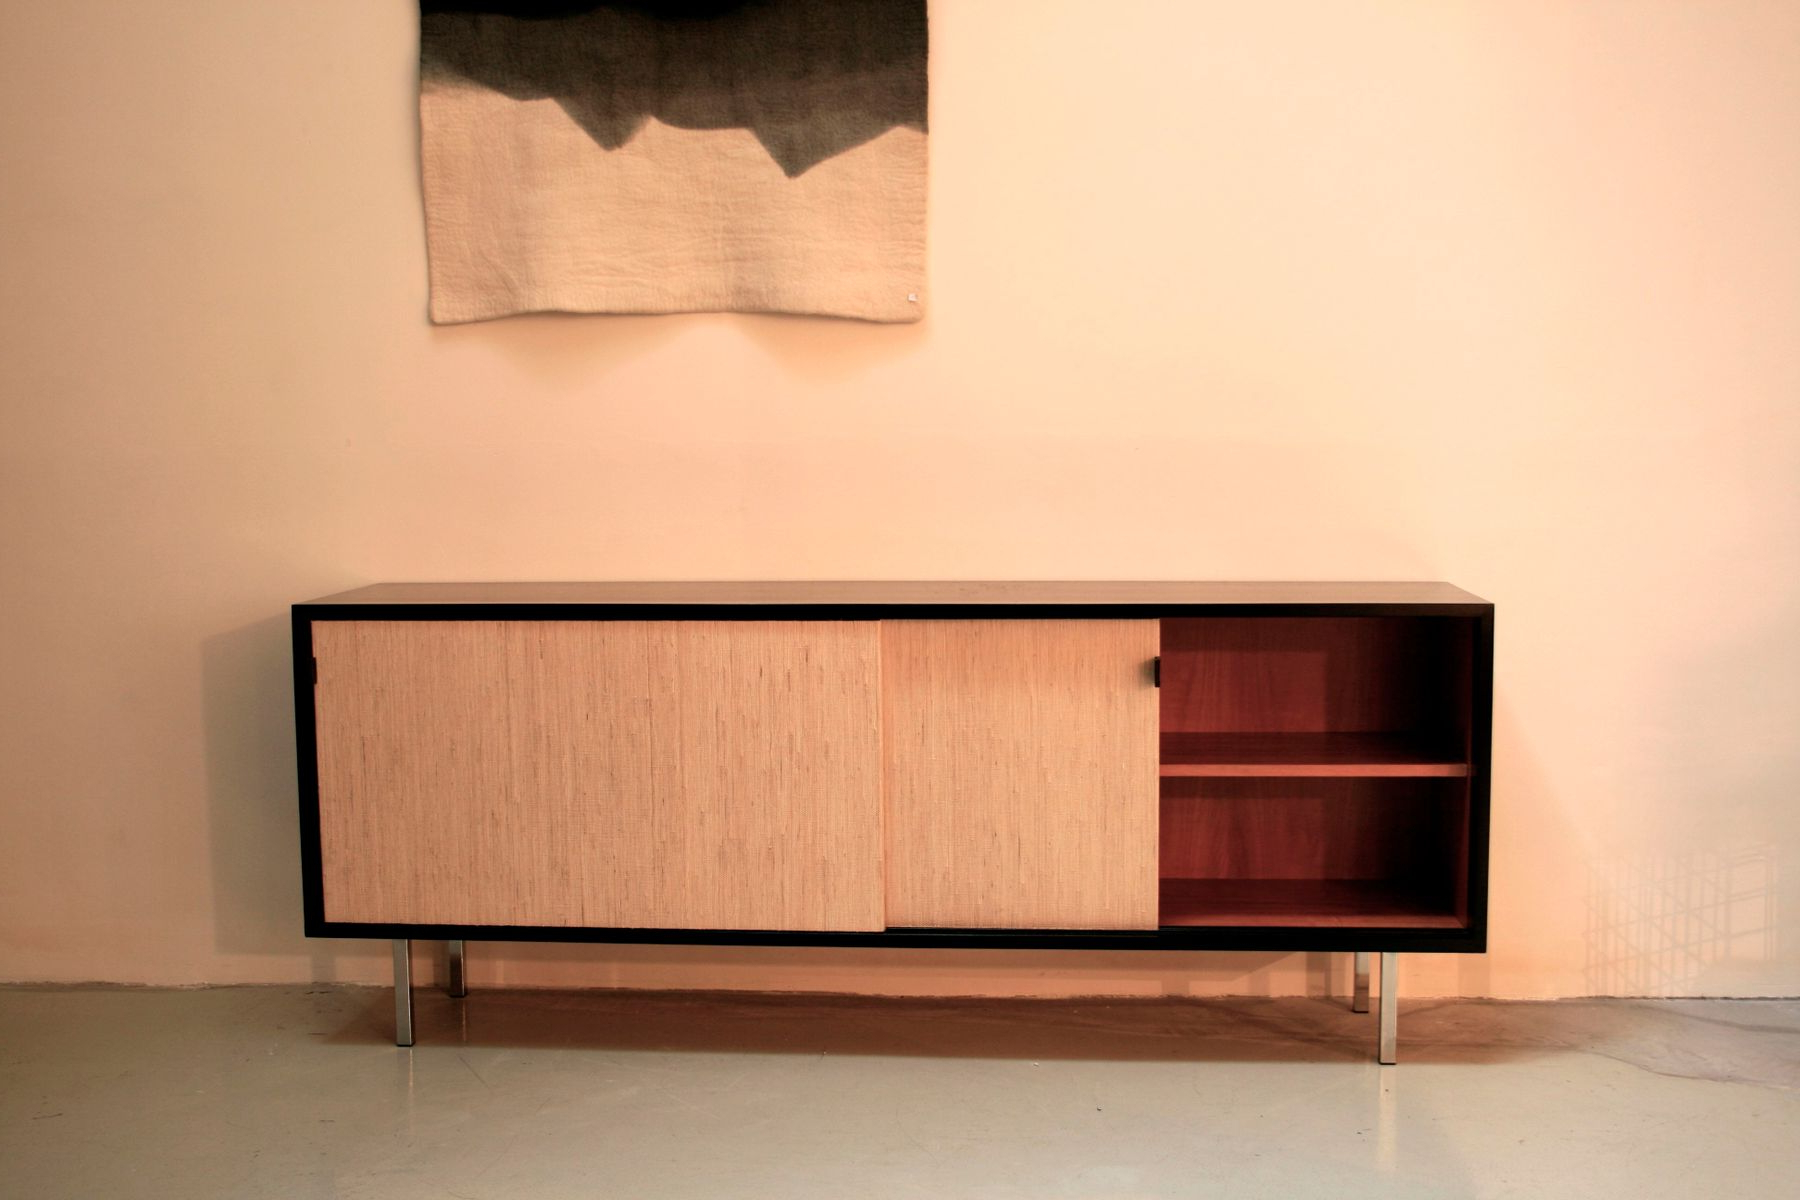 2018 Mid Century Sideboardflorence Knoll Bassett For Knoll Inc, 1950S With Regard To Girard 4 Door Sideboards (View 1 of 20)